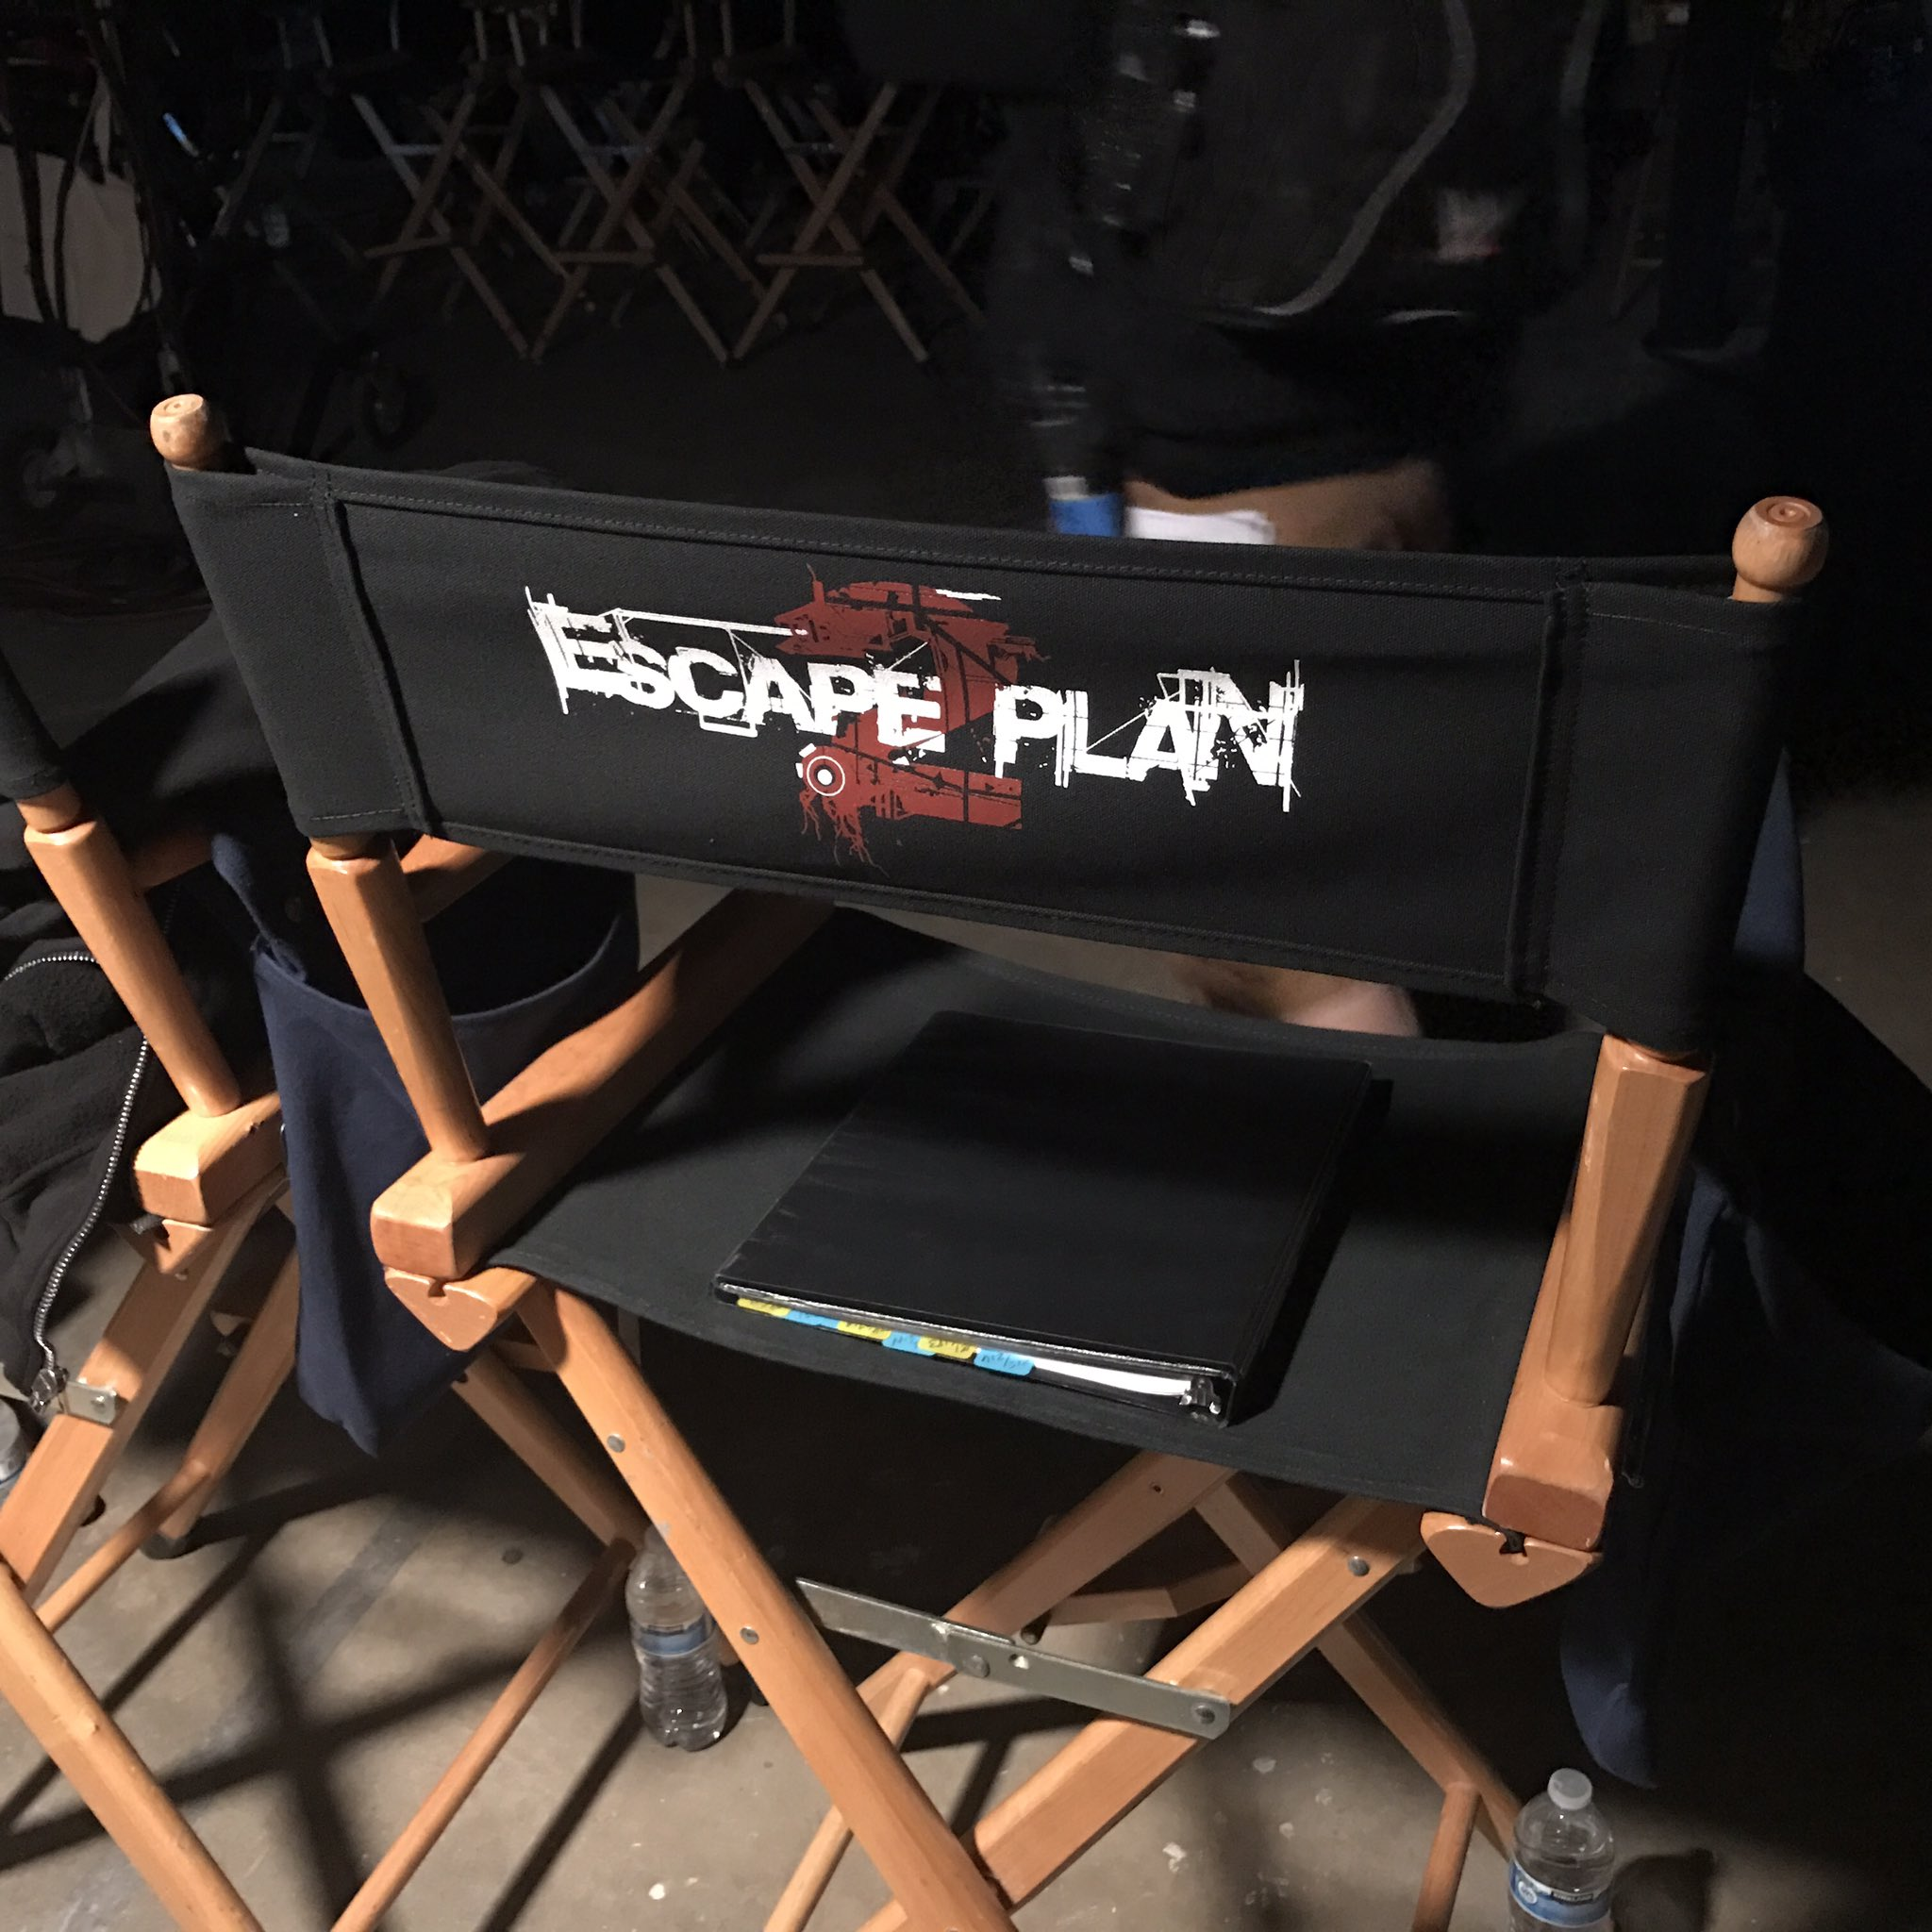 Jesse Metcalfe filming 'Escape Plan 2' with Sylvester Stallone and Dave Bautista